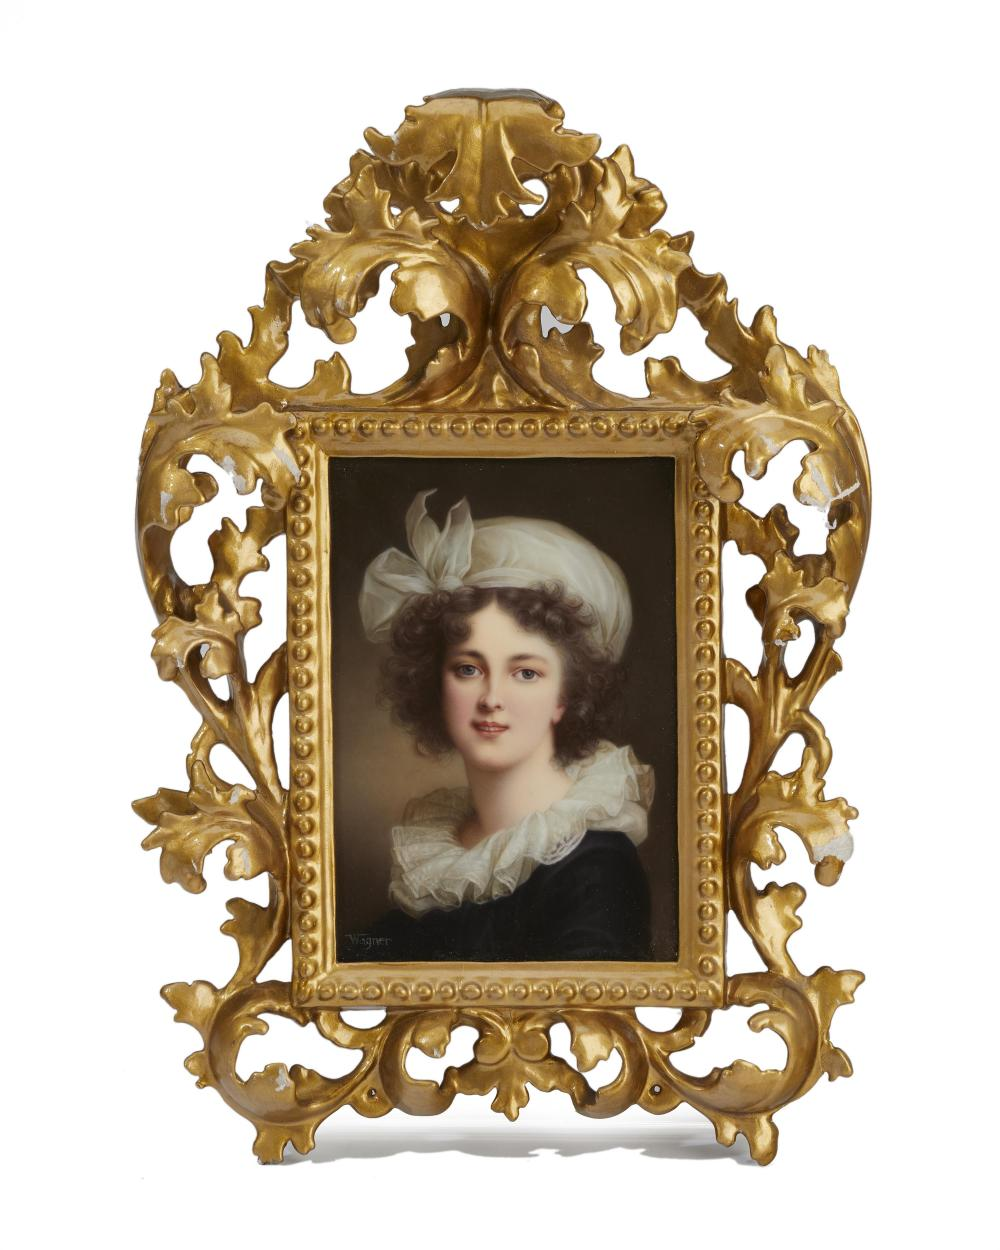 A Royal Vienna portrait plaque with carved frame